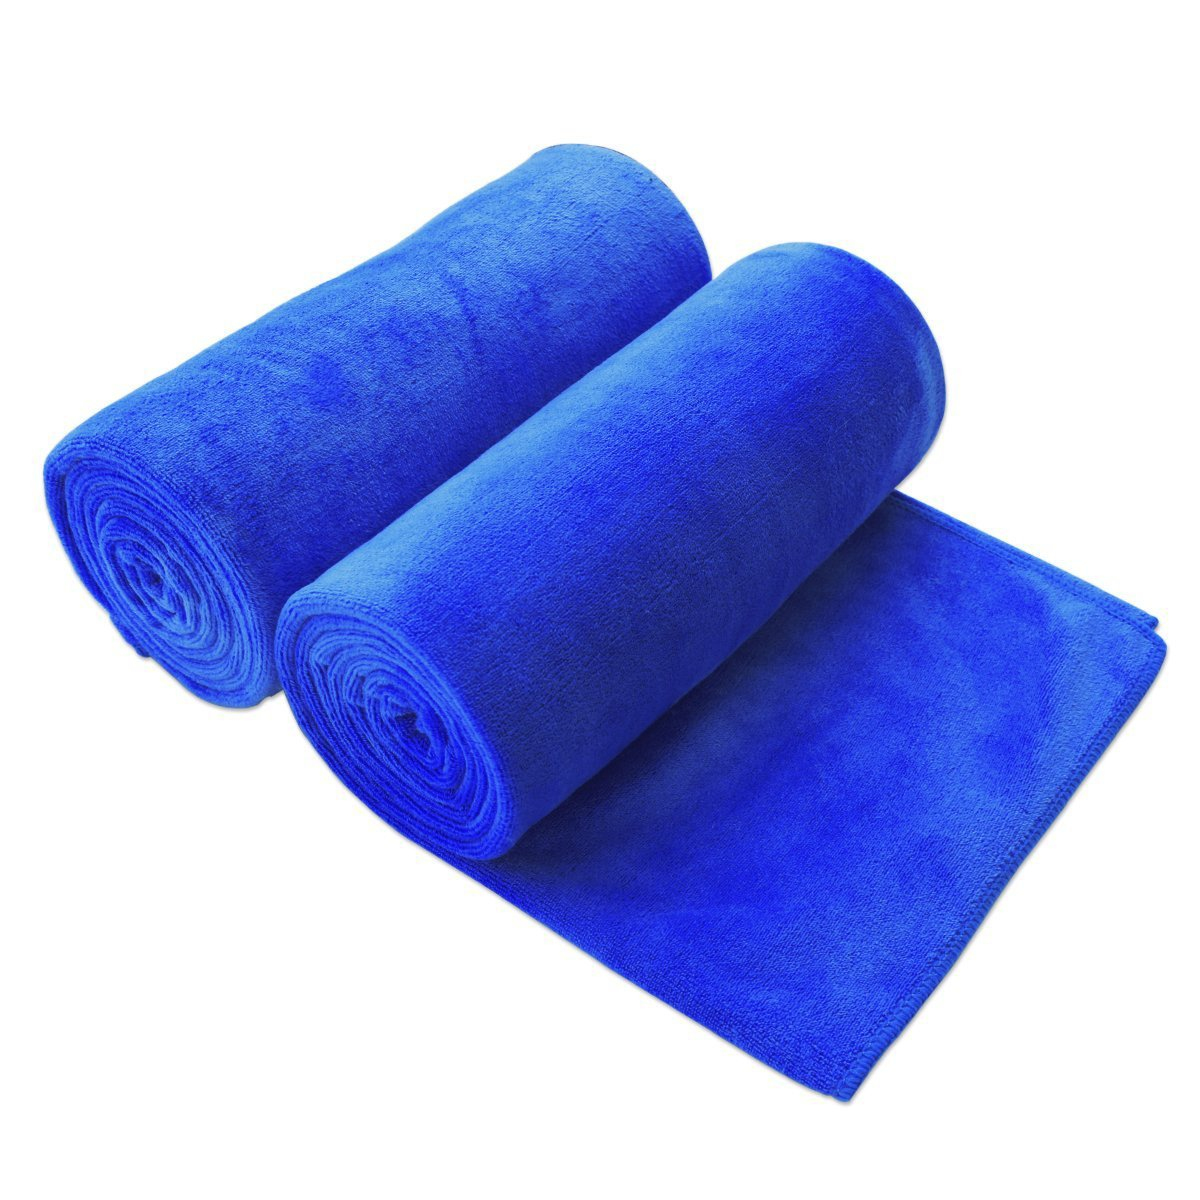 Jml Microfiber Pool/Bath Towels Bundle with Solid Colors Anti-static Ultra Absorbent Travel Sports Microfiber Towels, 2 Pack Eco-friendly Towels for Kids, Dark Blue - 30'' x 60'' (76x150cm)